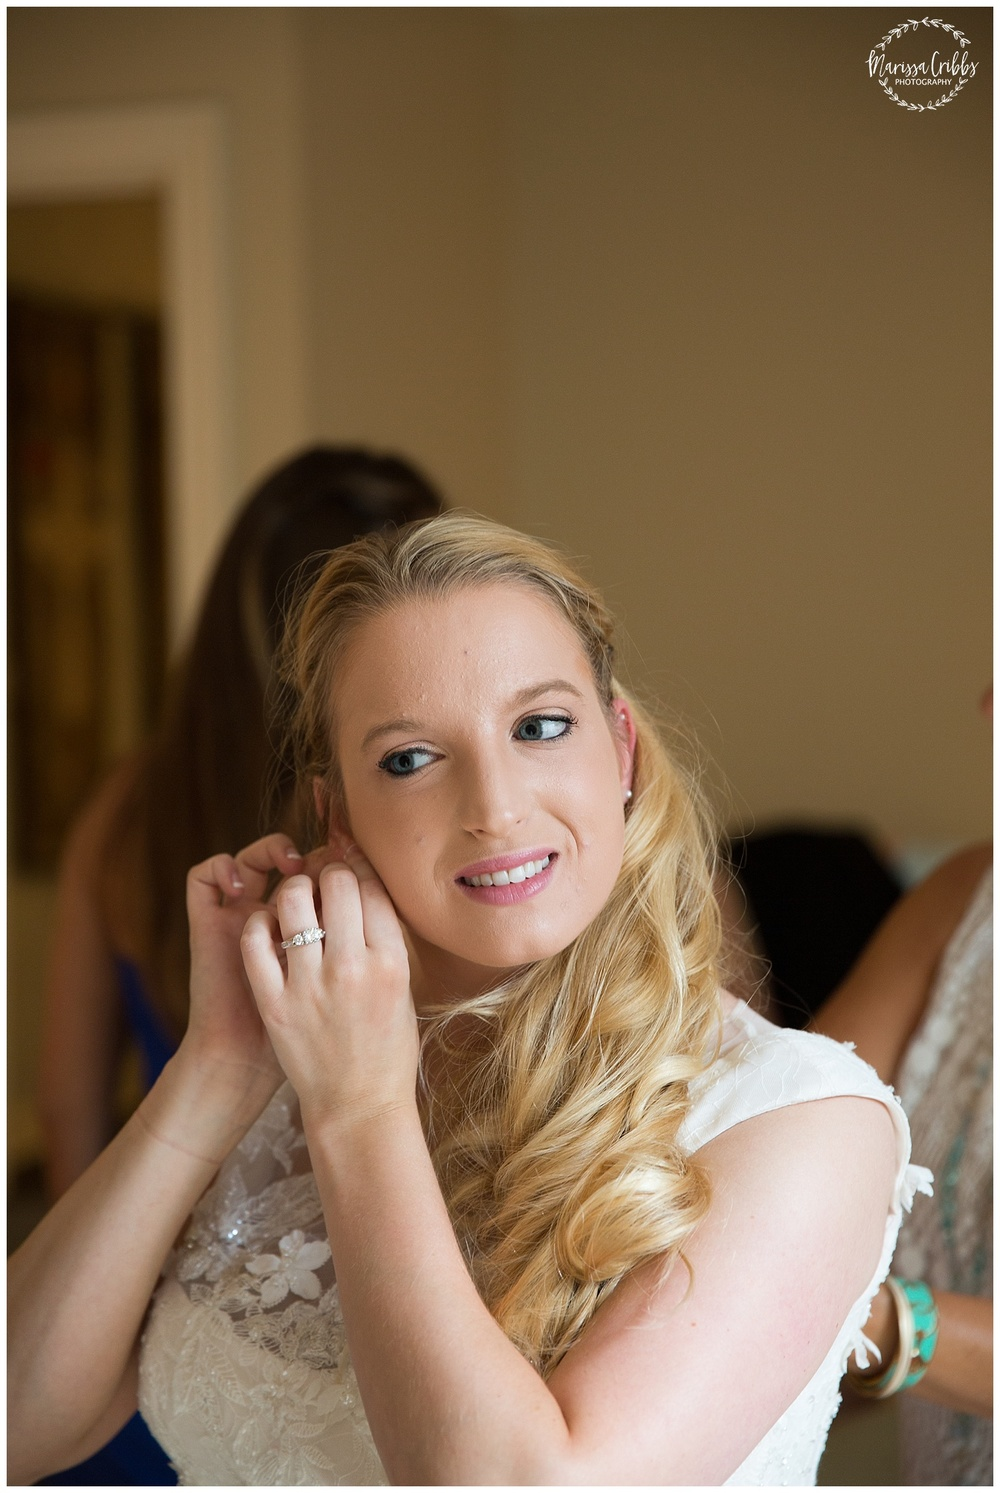 Jimenez Wedding | Marissa Cribbs Photography_0240.jpg